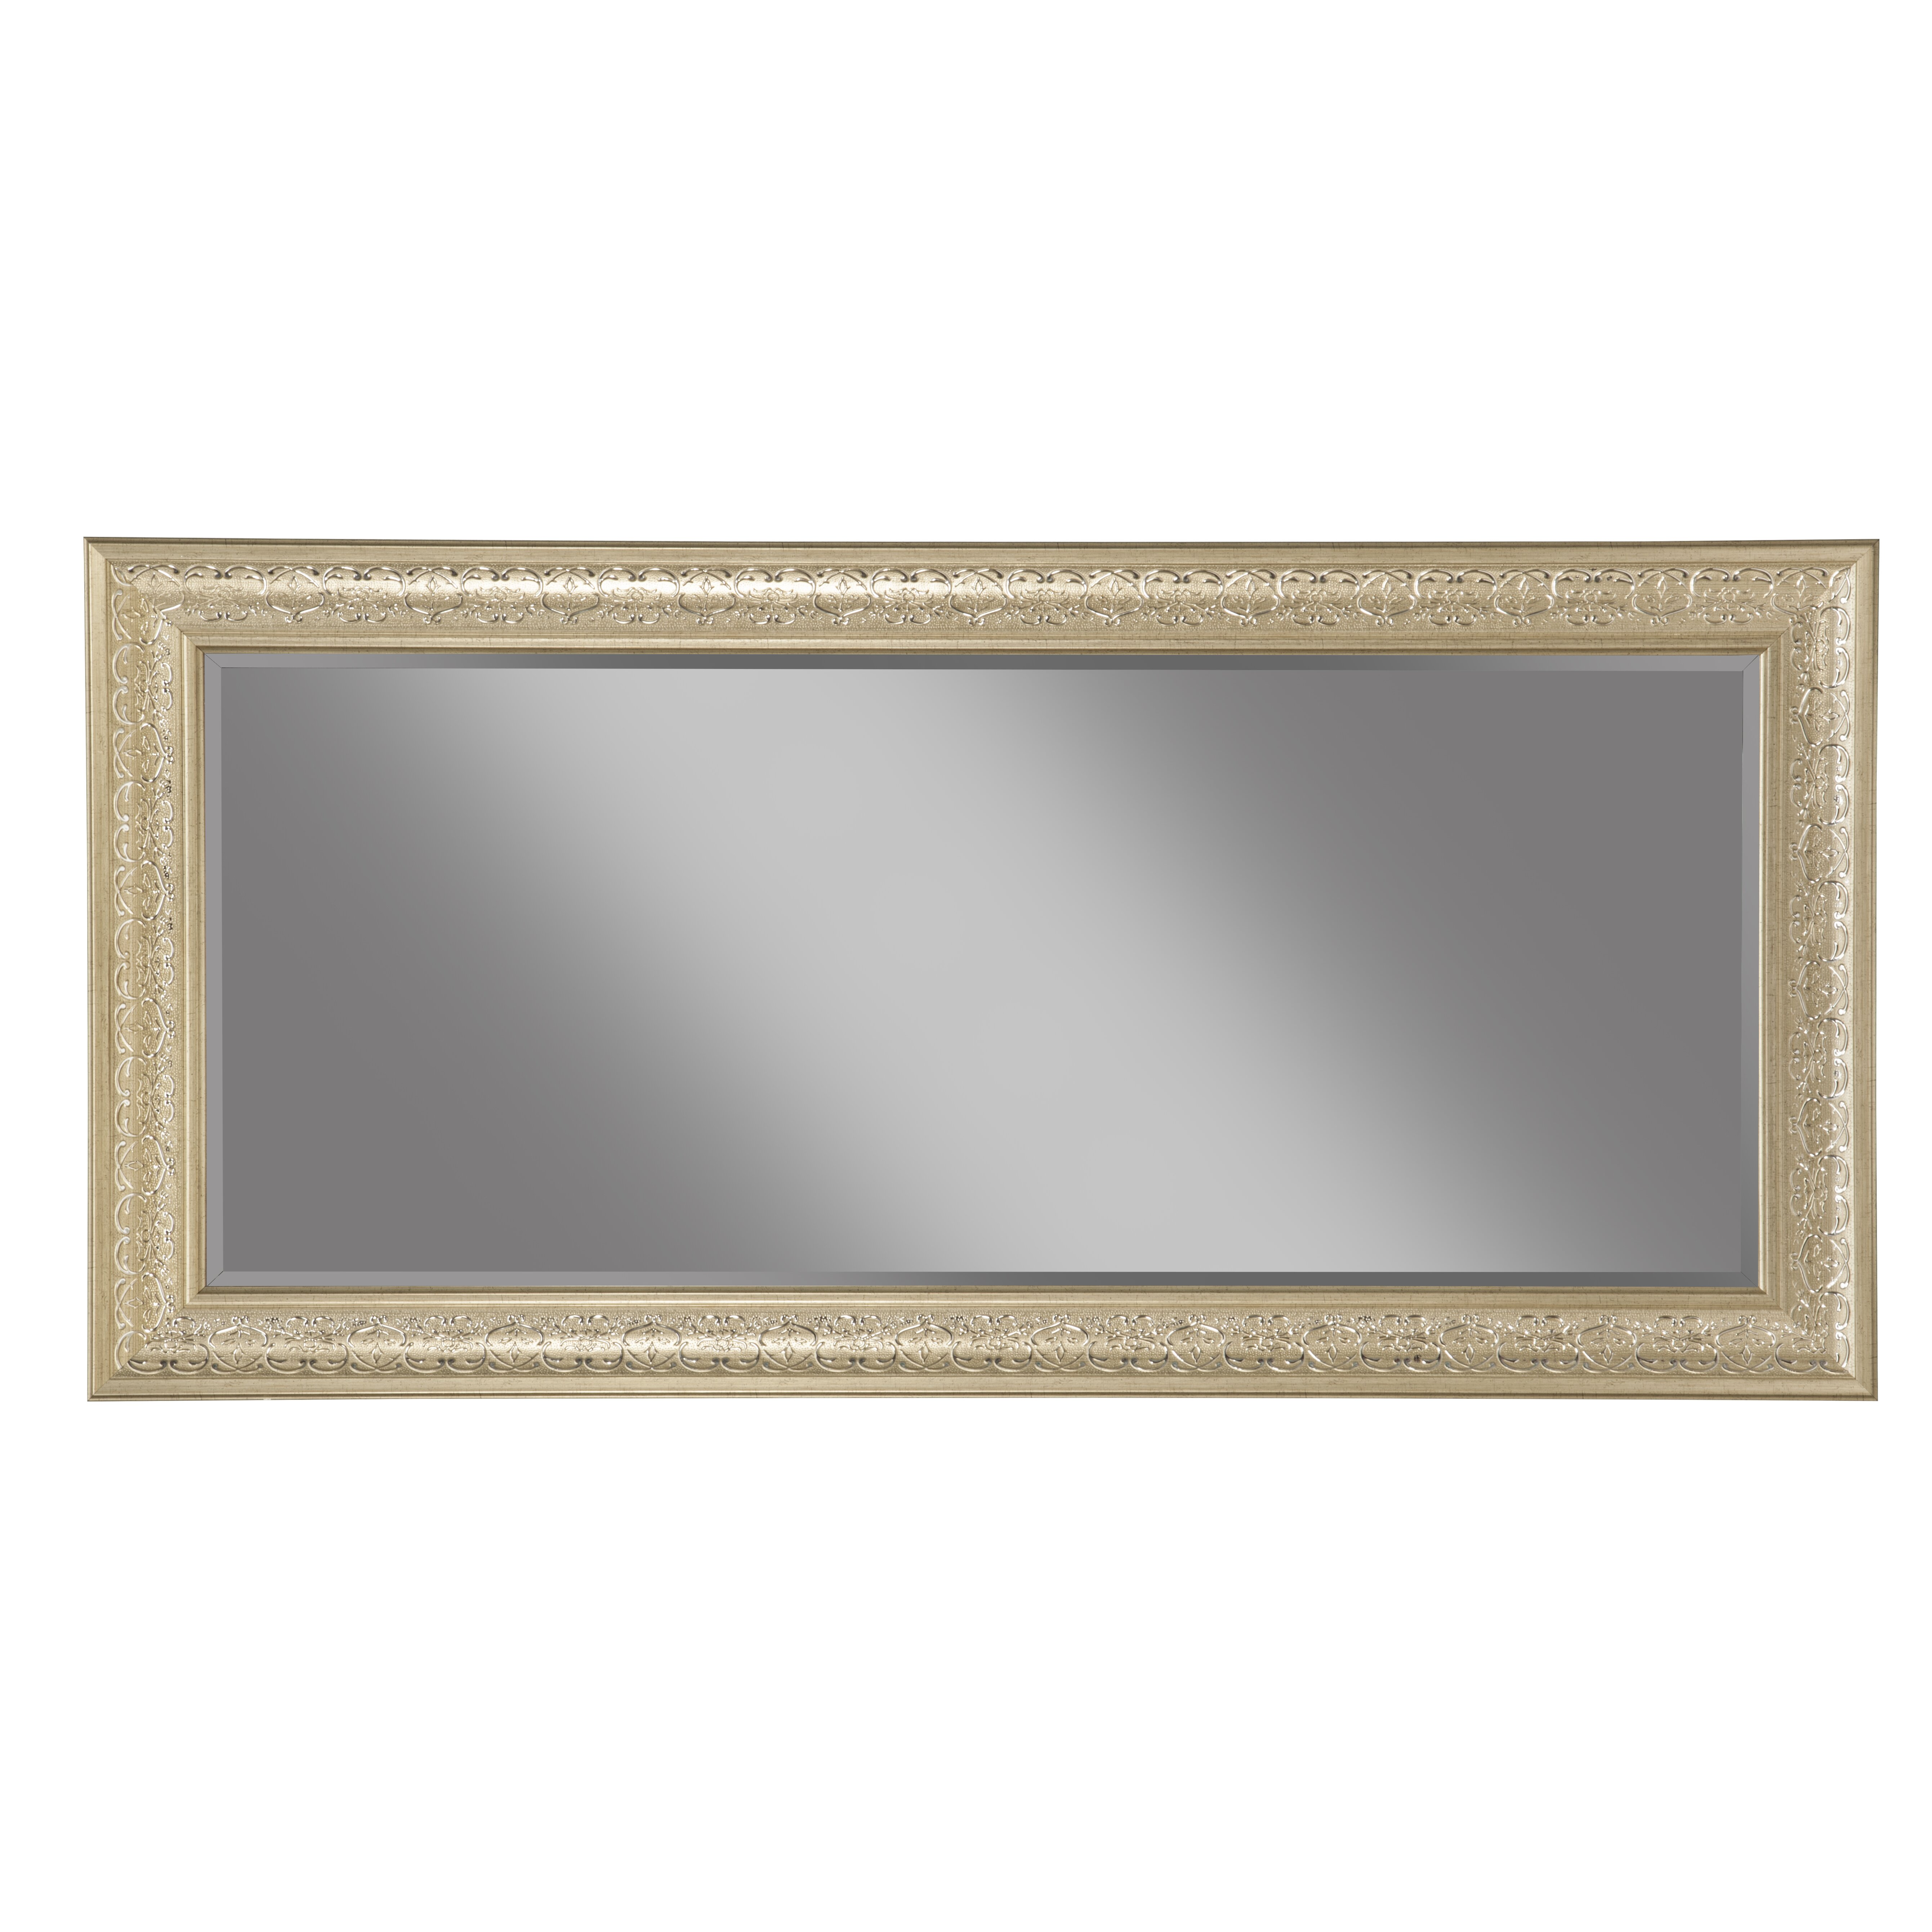 Sandberg furniture peyton full length leaning wall mirror for Full wall mirrors